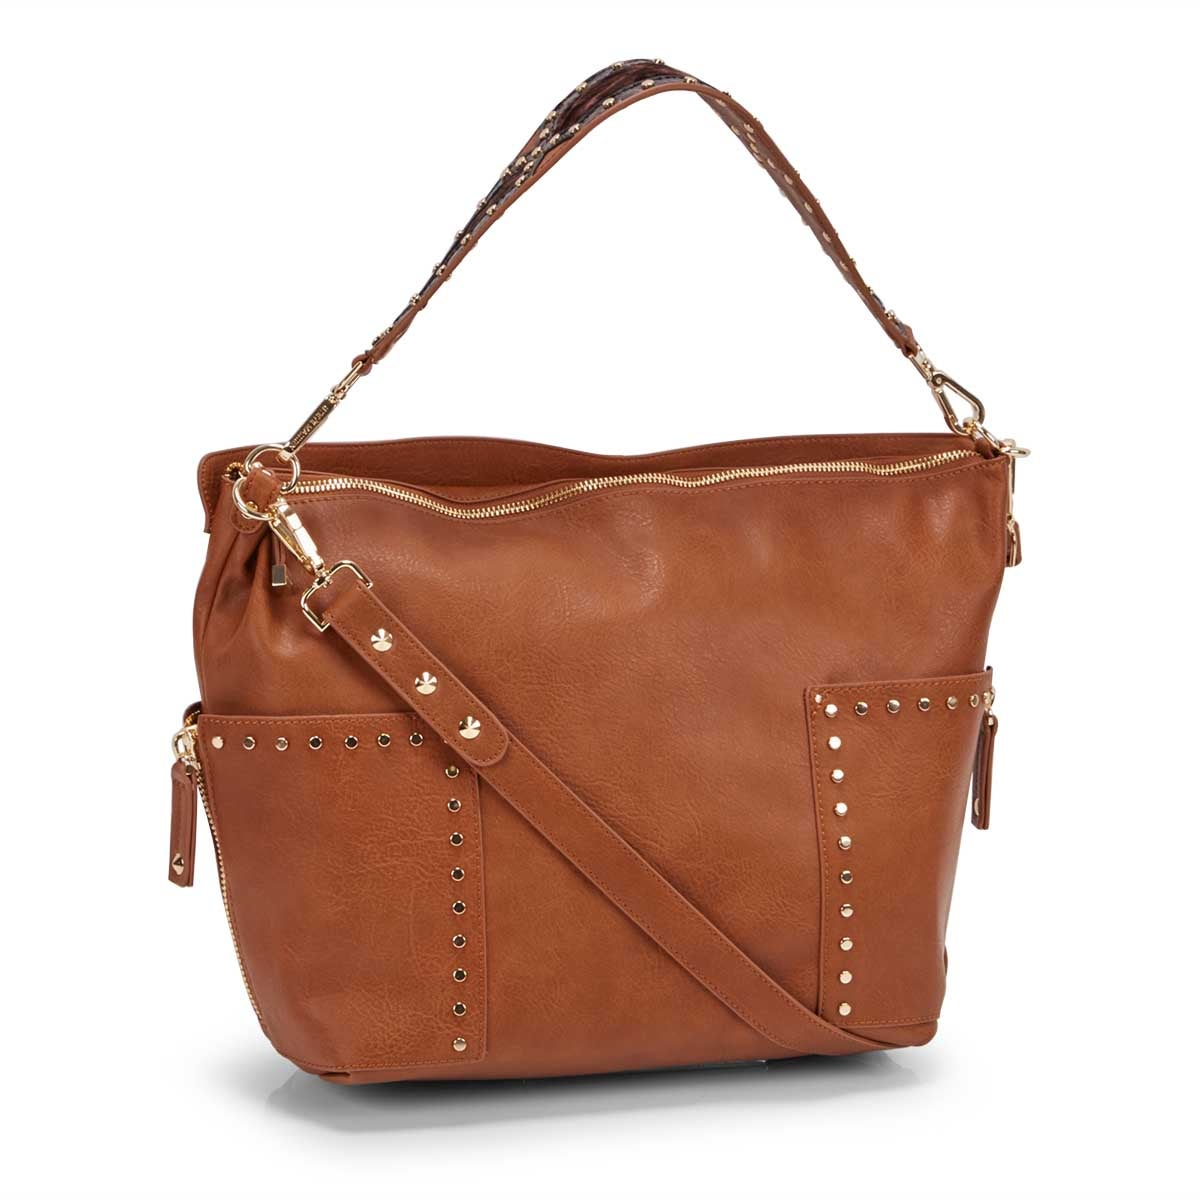 Women's BFRAN cognac hobo bag